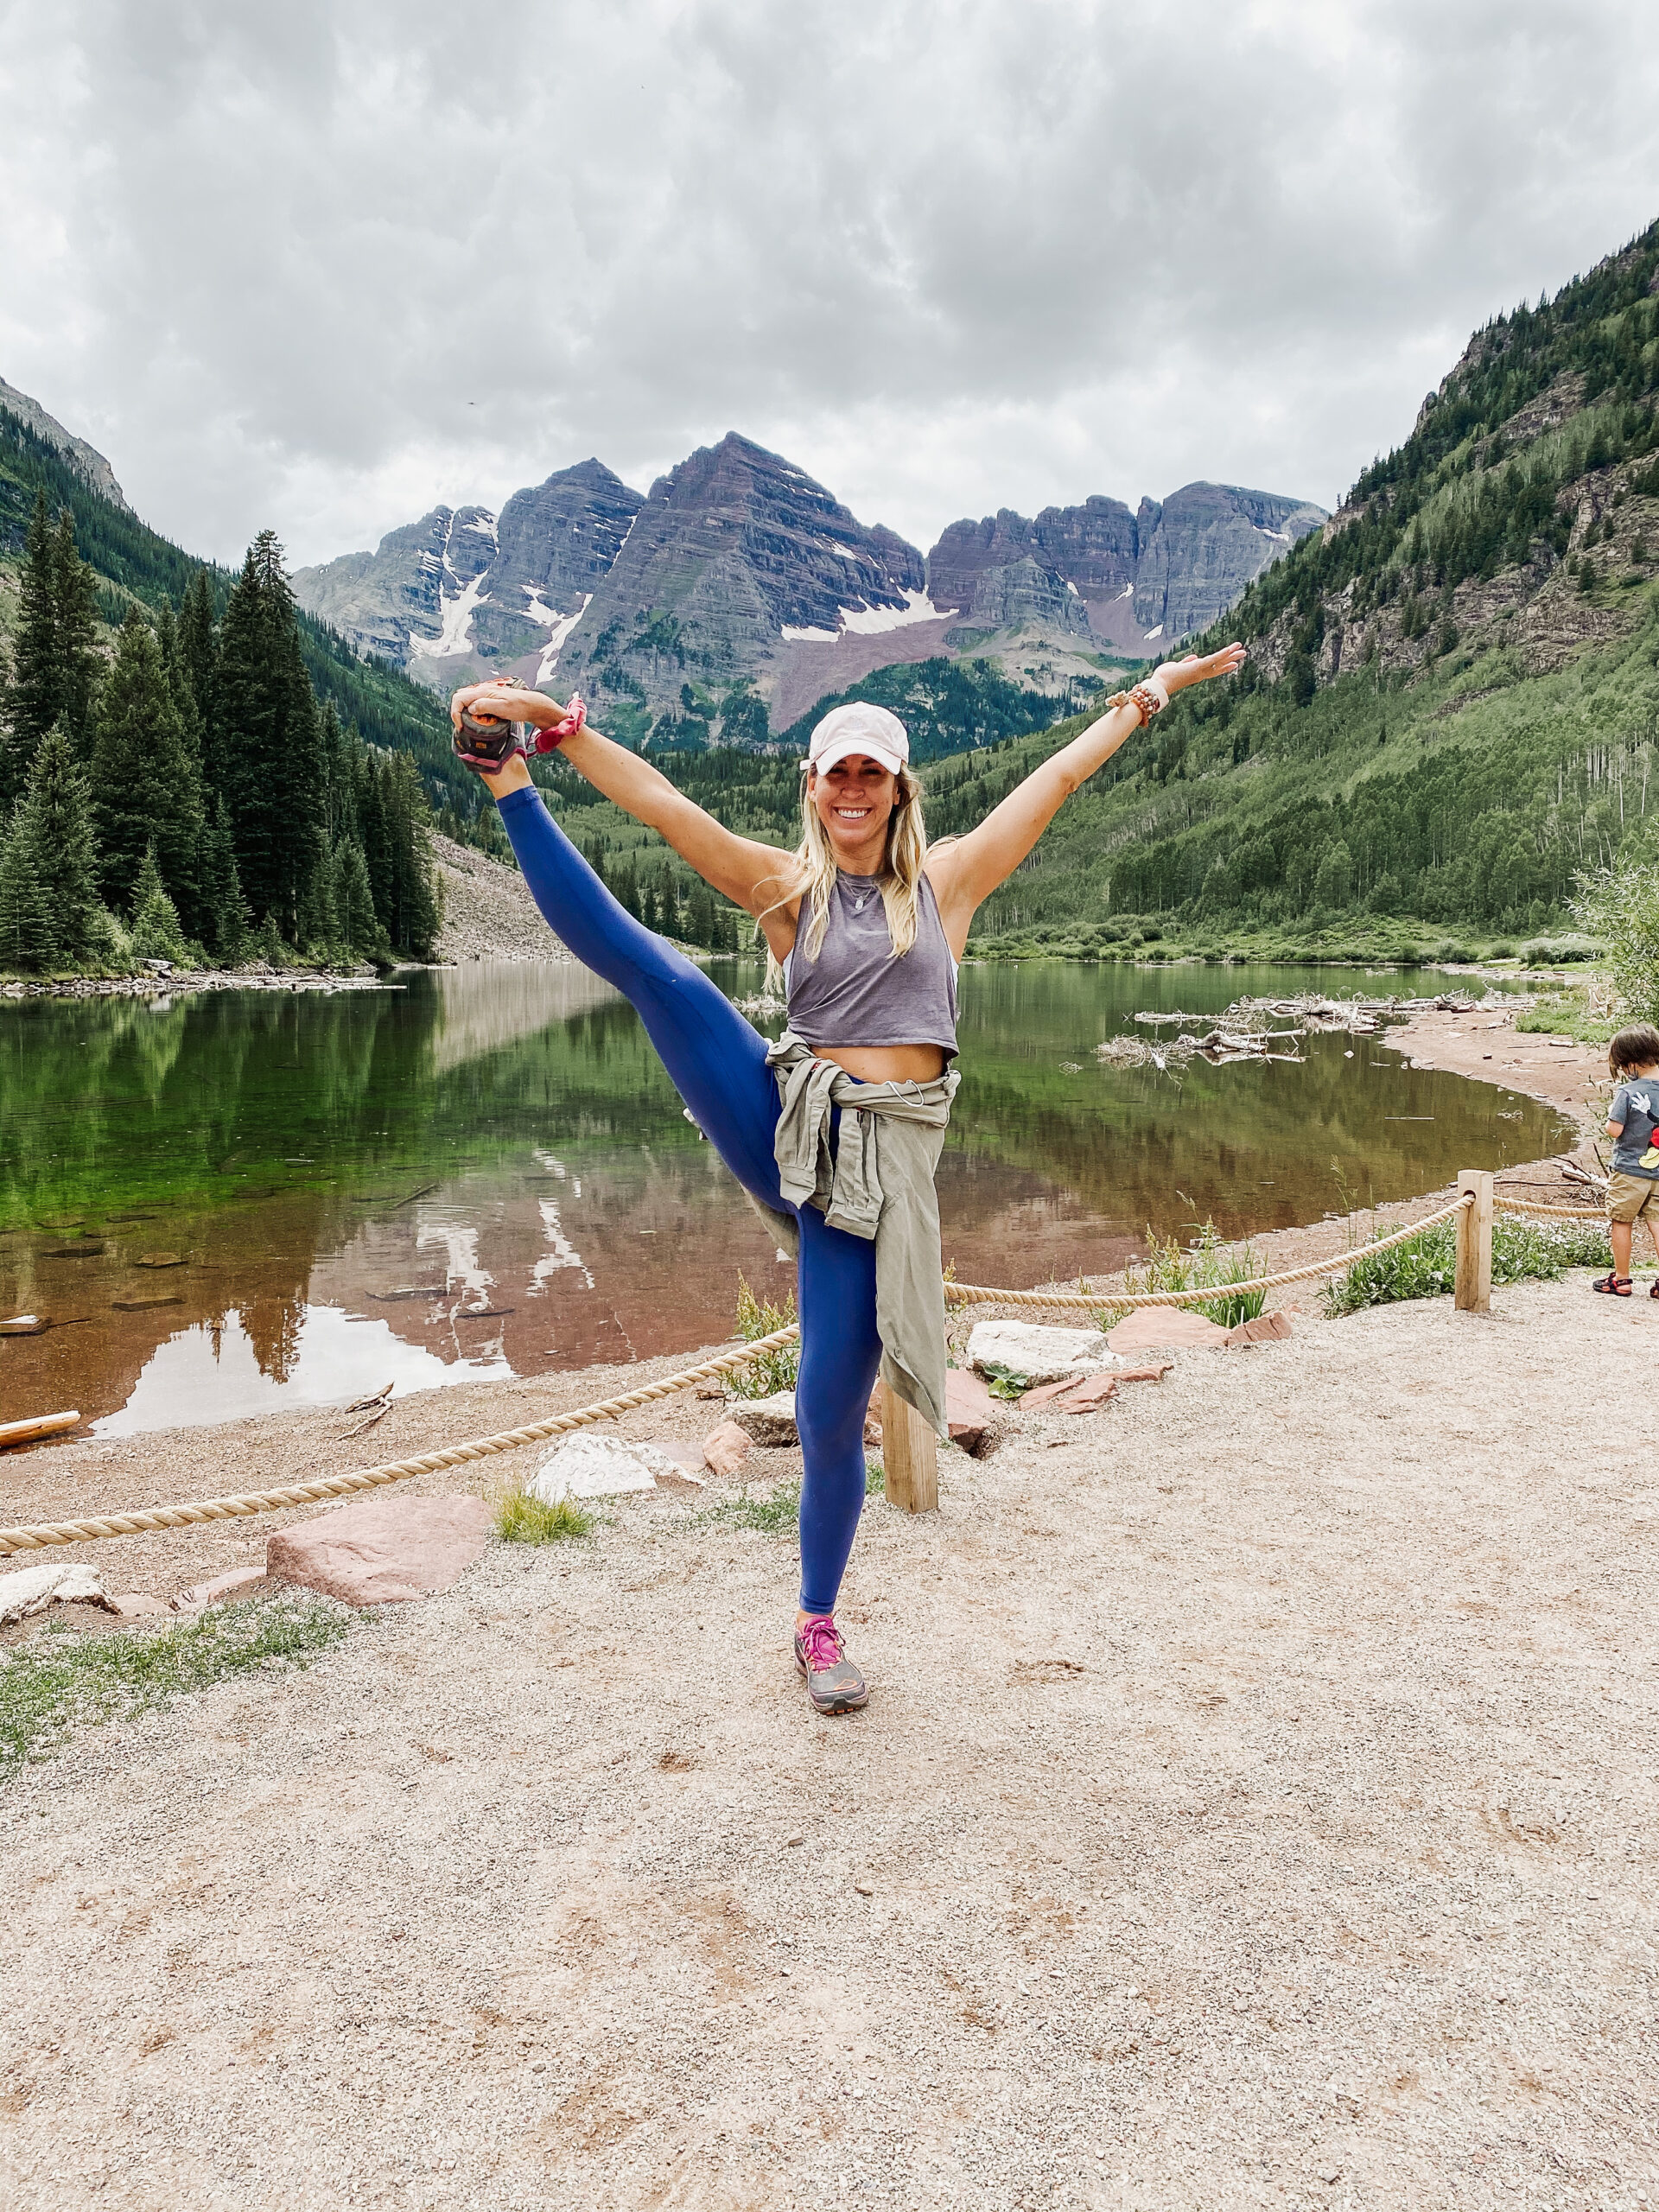 hiking and yoga in colorado on our summer road trip of 2020. #yoga #hiking #getoutside #travel